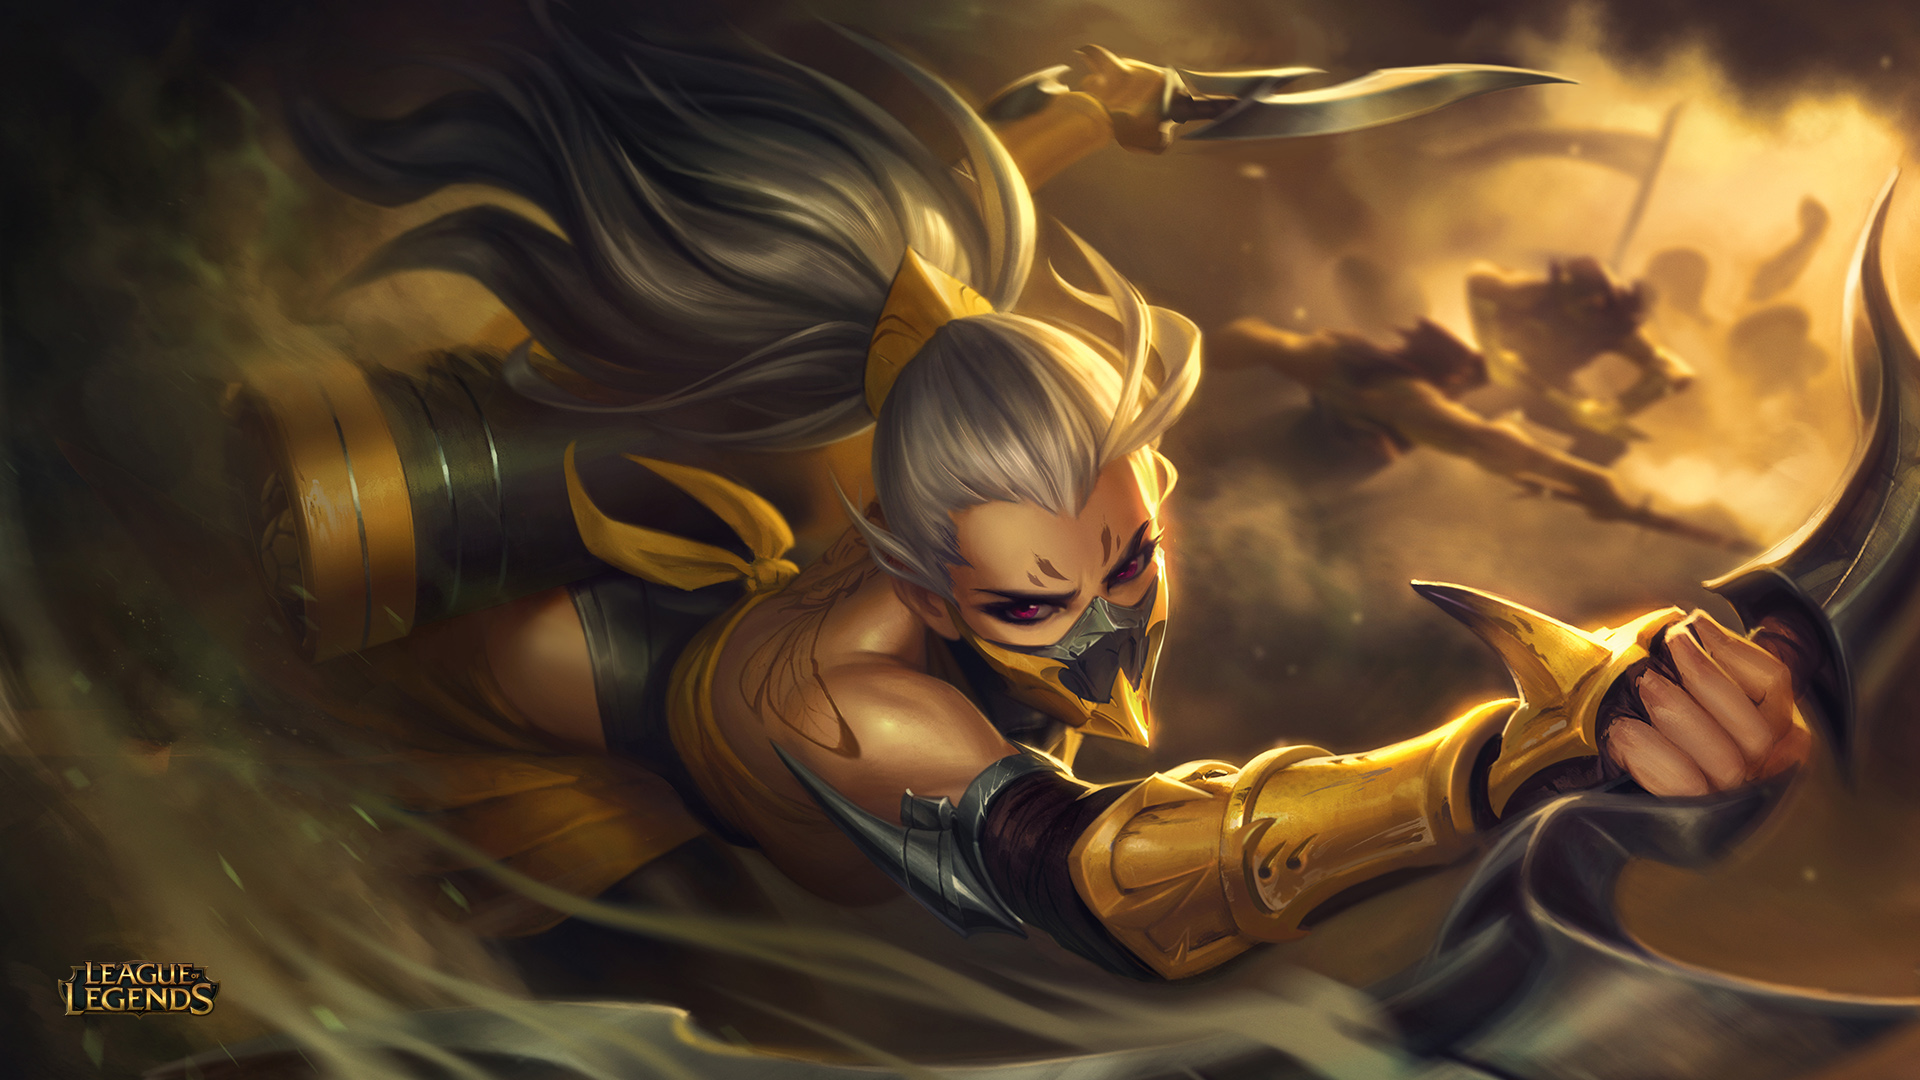 Akali League Of Legends Wallpaper 2354603 Zerochan Anime